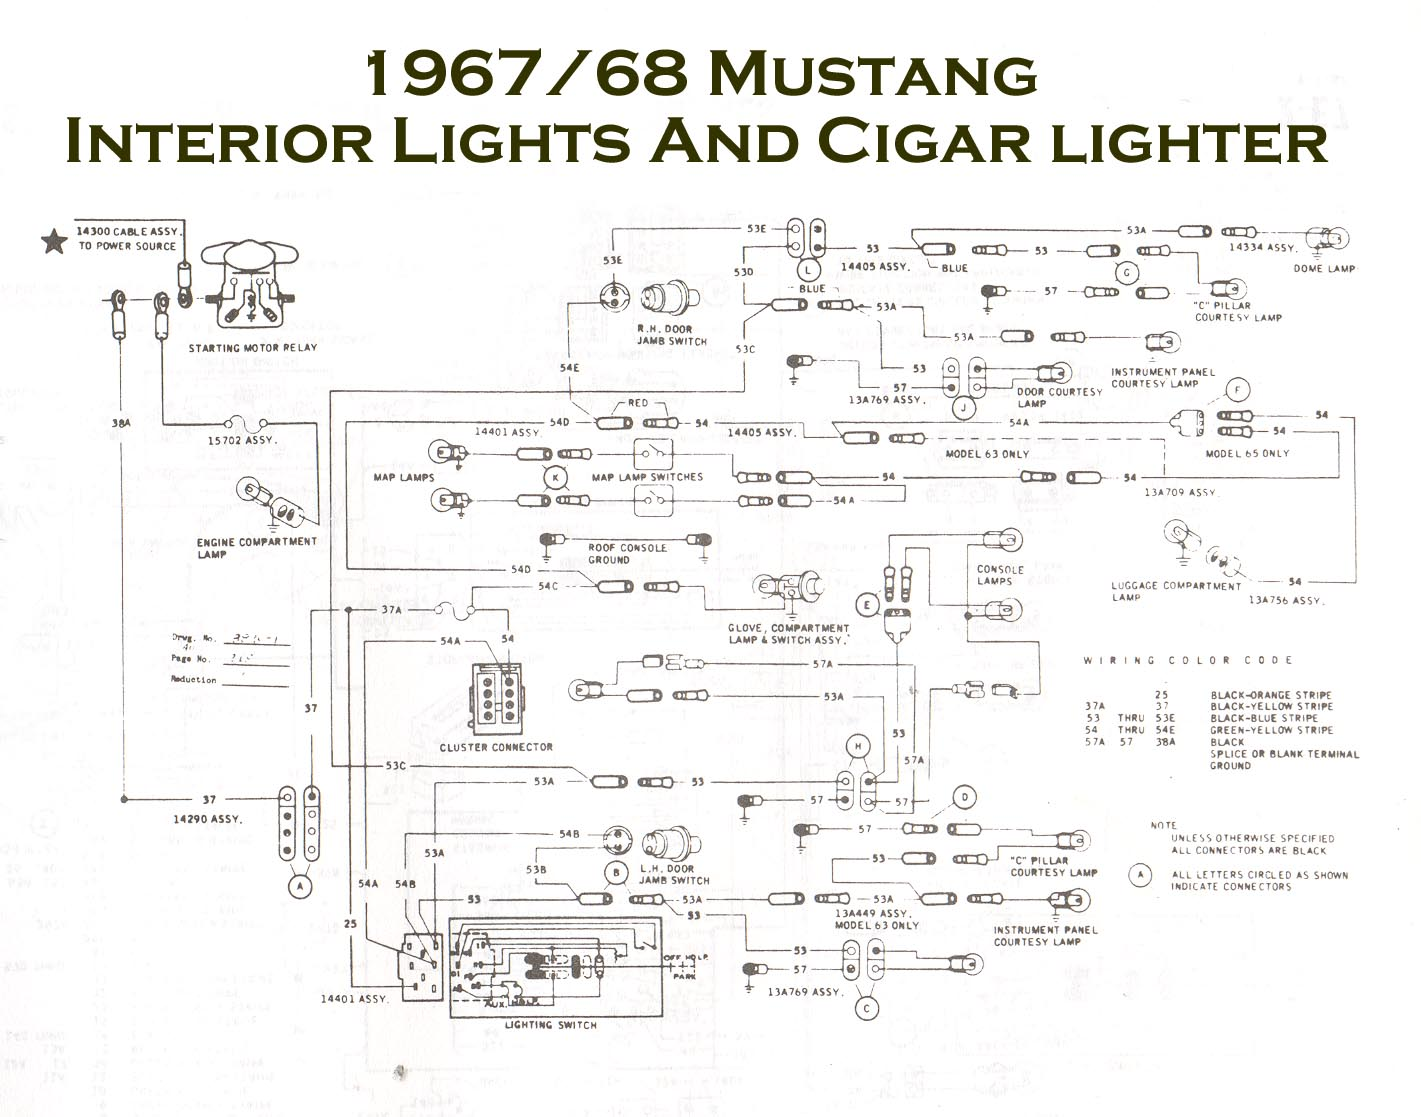 1968 Mustang Tach Wiring Diagram Libraries Icm272 Control Board 67 Gt Tachometer Todays1967 Blog 1967